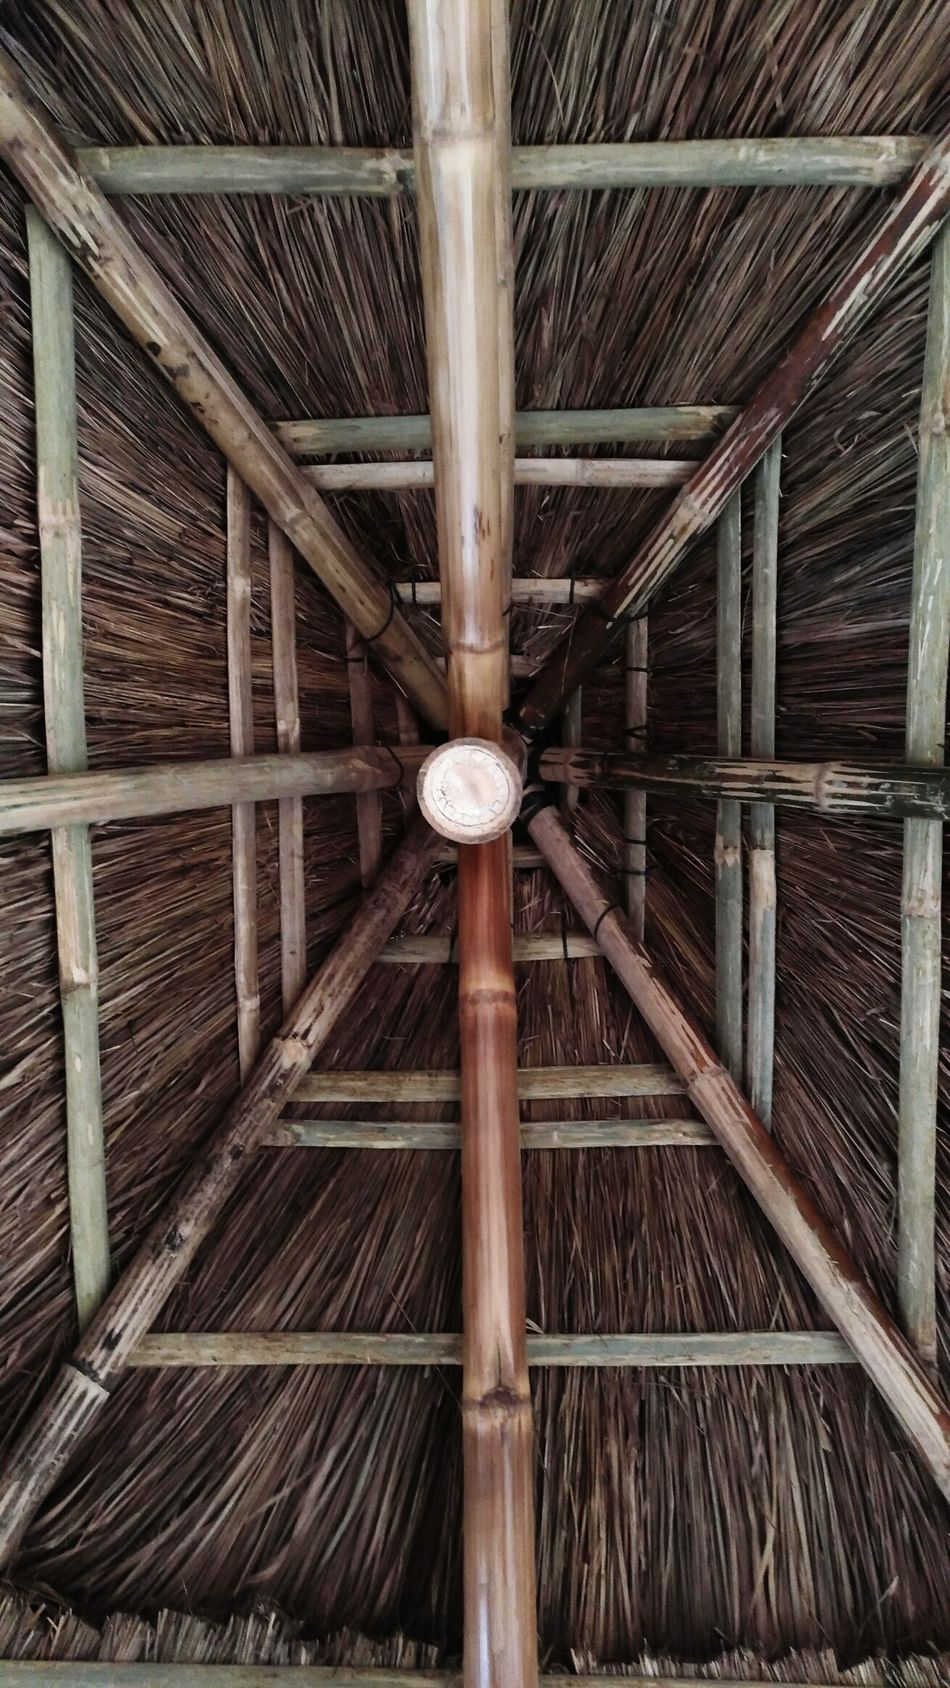 Beneath a hut Architecture Bamboo - Material Bamboodesign Man Made Object